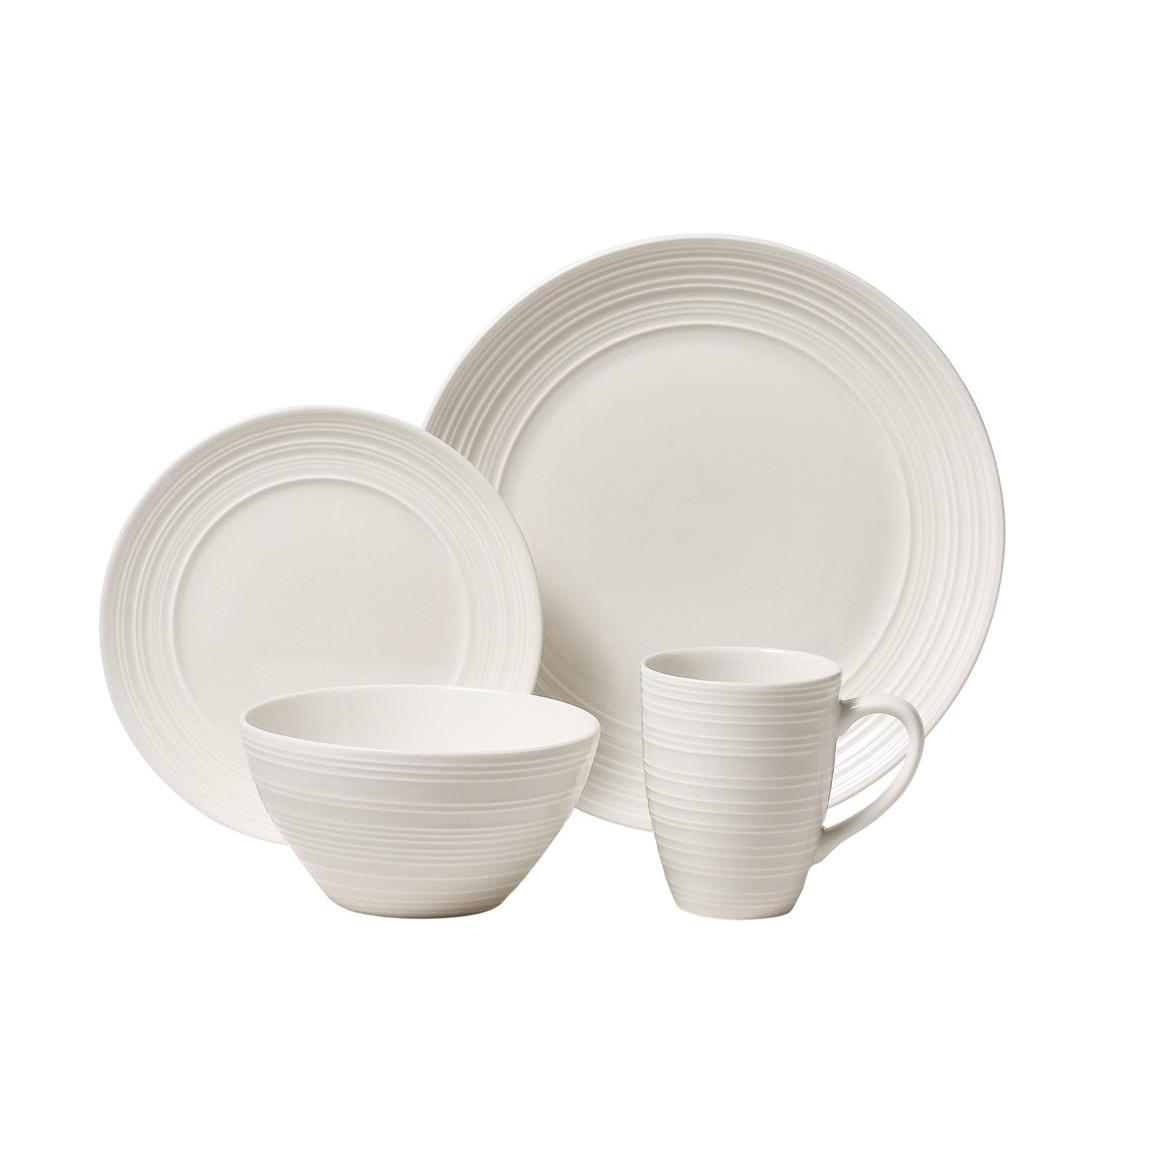 Dinnerware Set Ripple White 16 Piece Set (DP 6.99,SP 2.99 BW 4.99, MG 1.99)